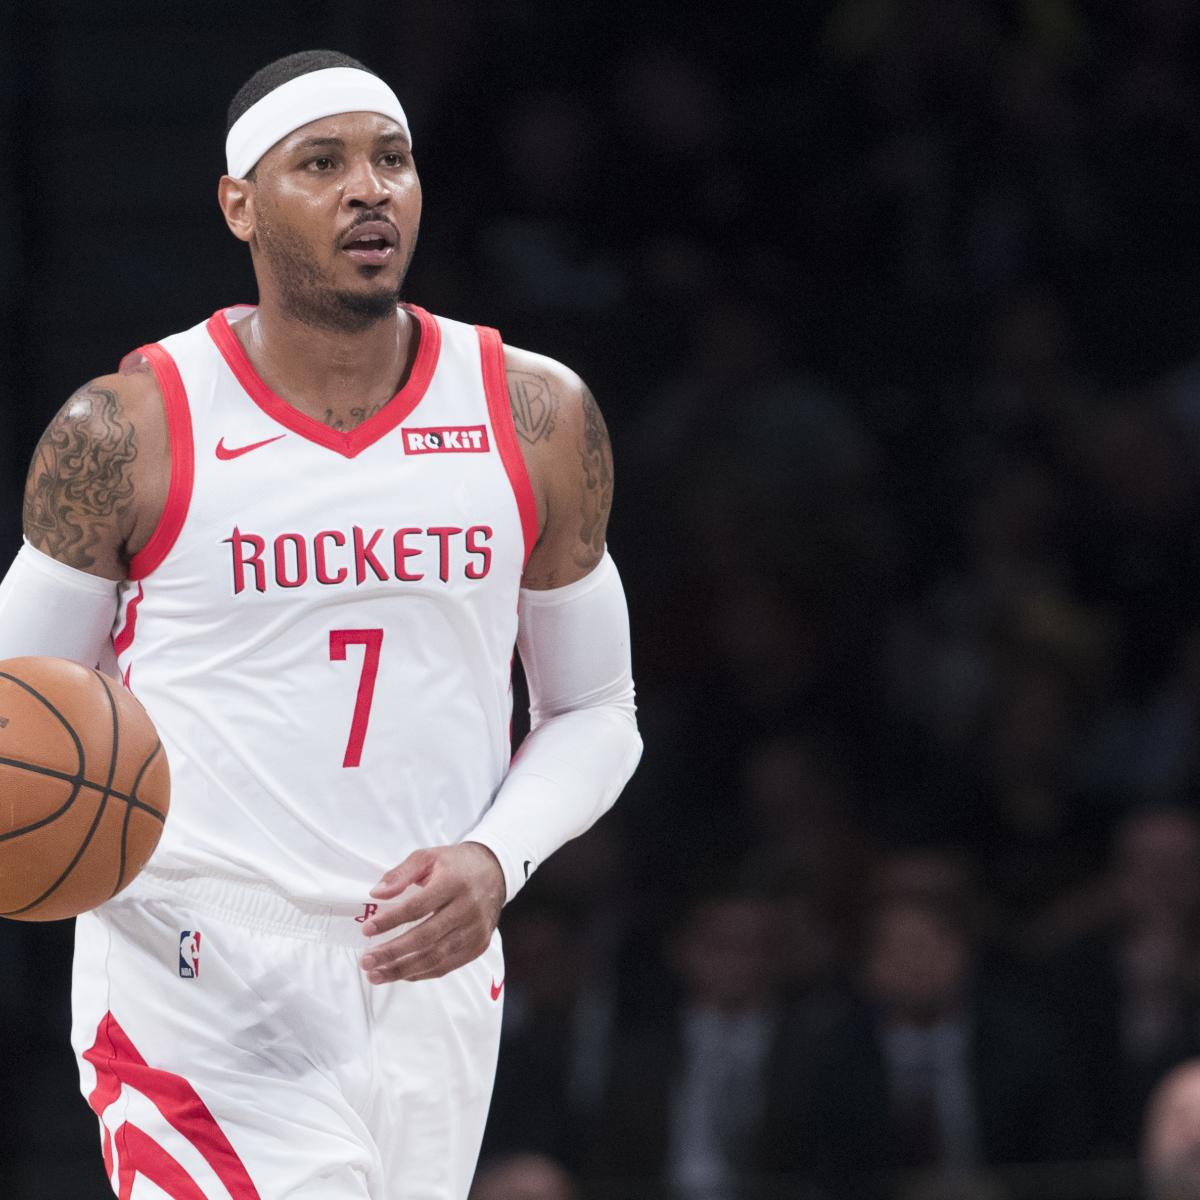 Houston Rockets Where To Watch The Upcoming Match Espn: Carmelo Anthony Rumors: Clippers Not Interested In Signing